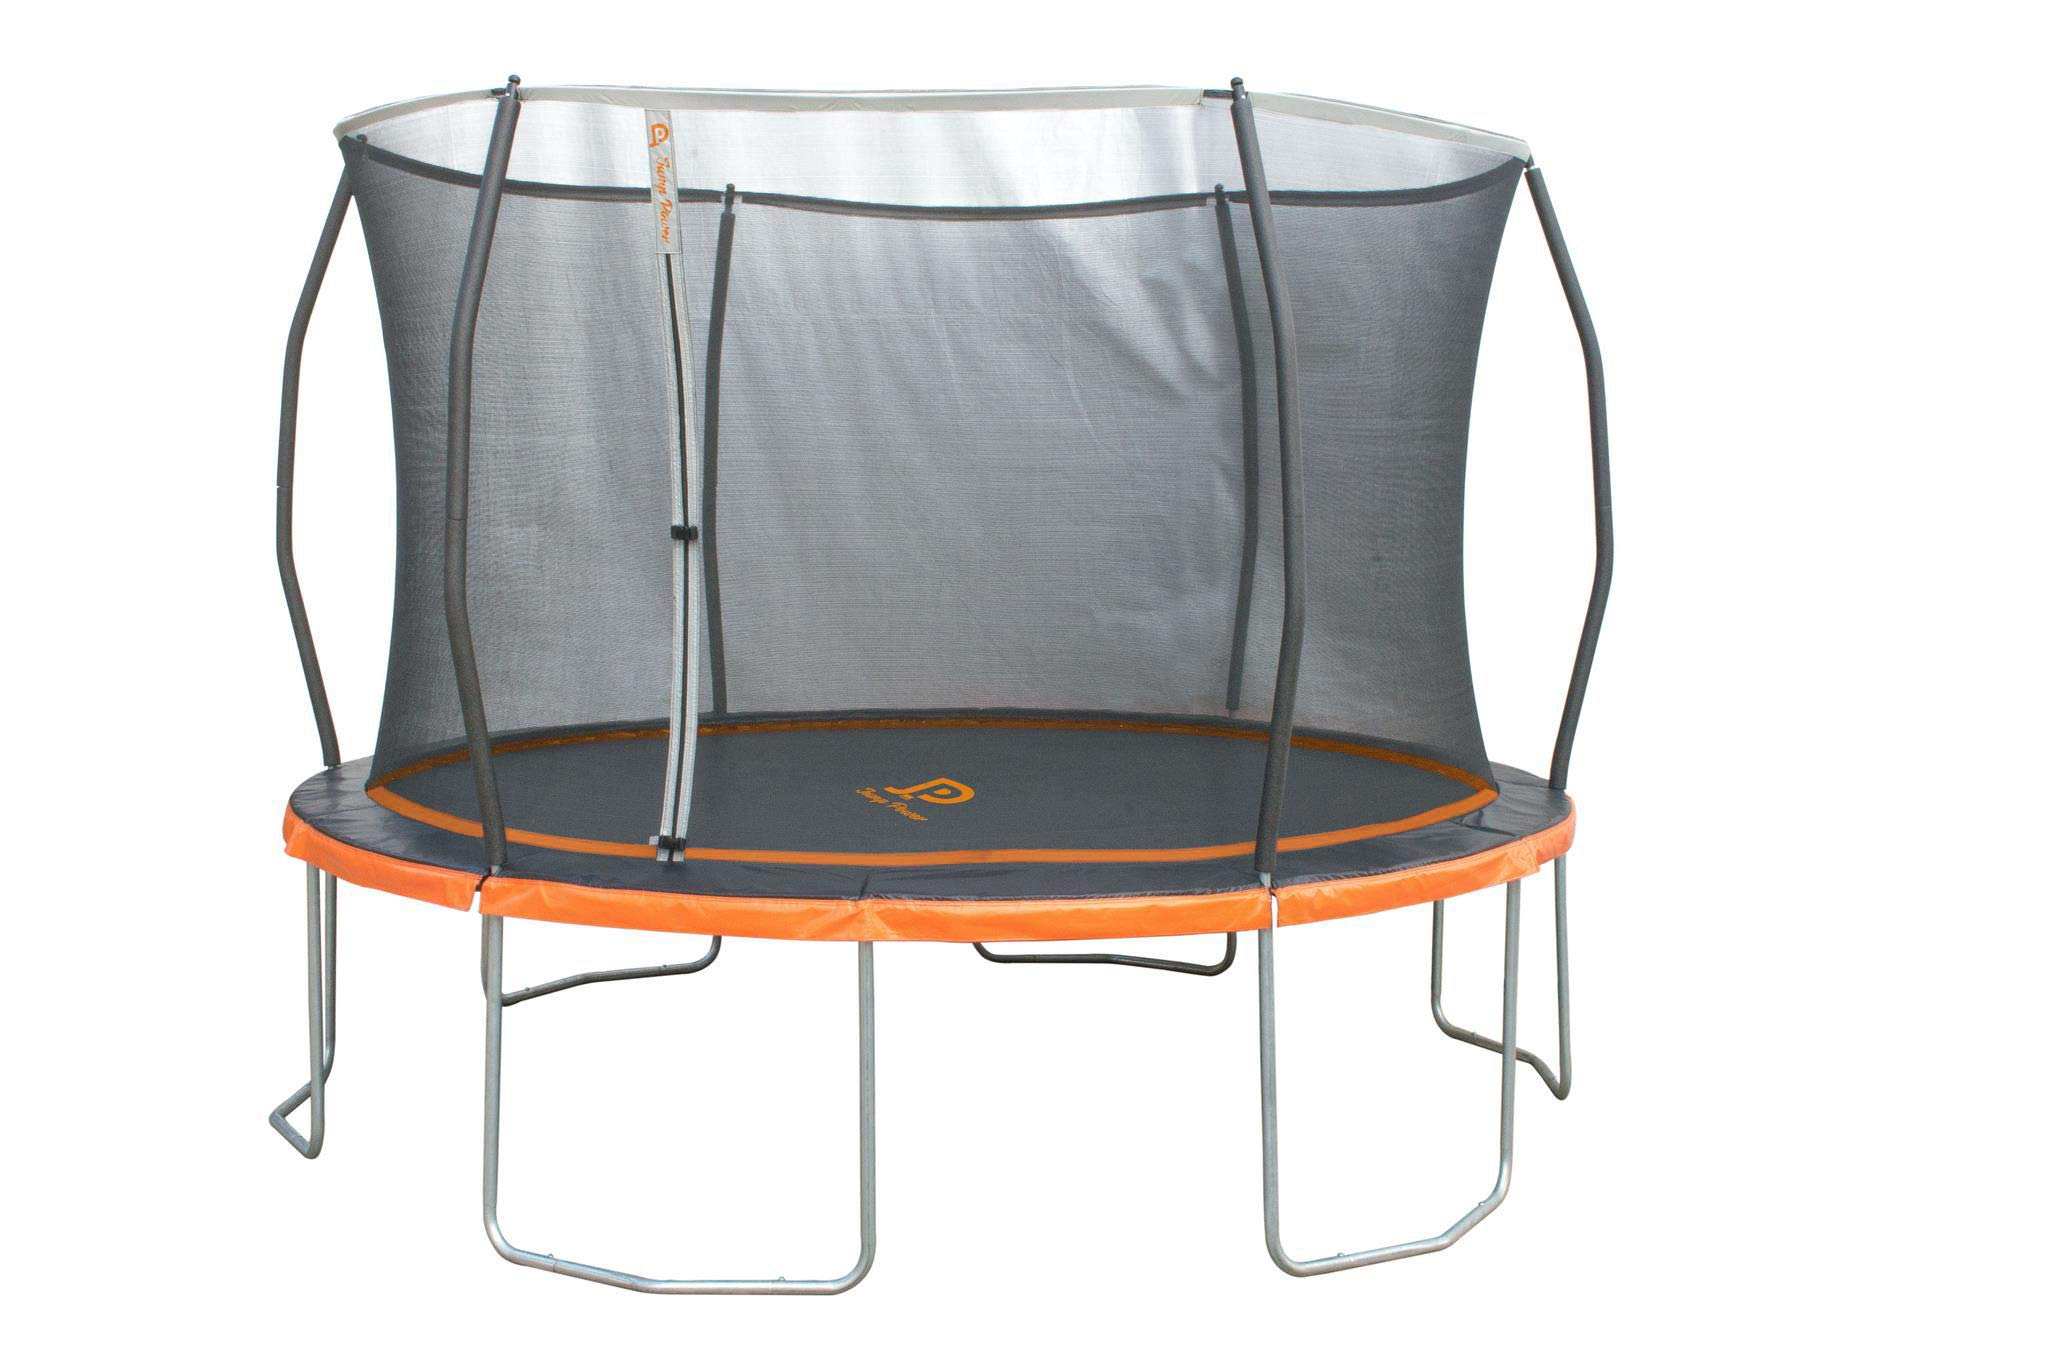 JUMP POWER ''ASTM Safety Approved 12'ft. Trampoline with Patented Steel Flex Ring Safety Net Enclosure System, Black, Orange, Silver